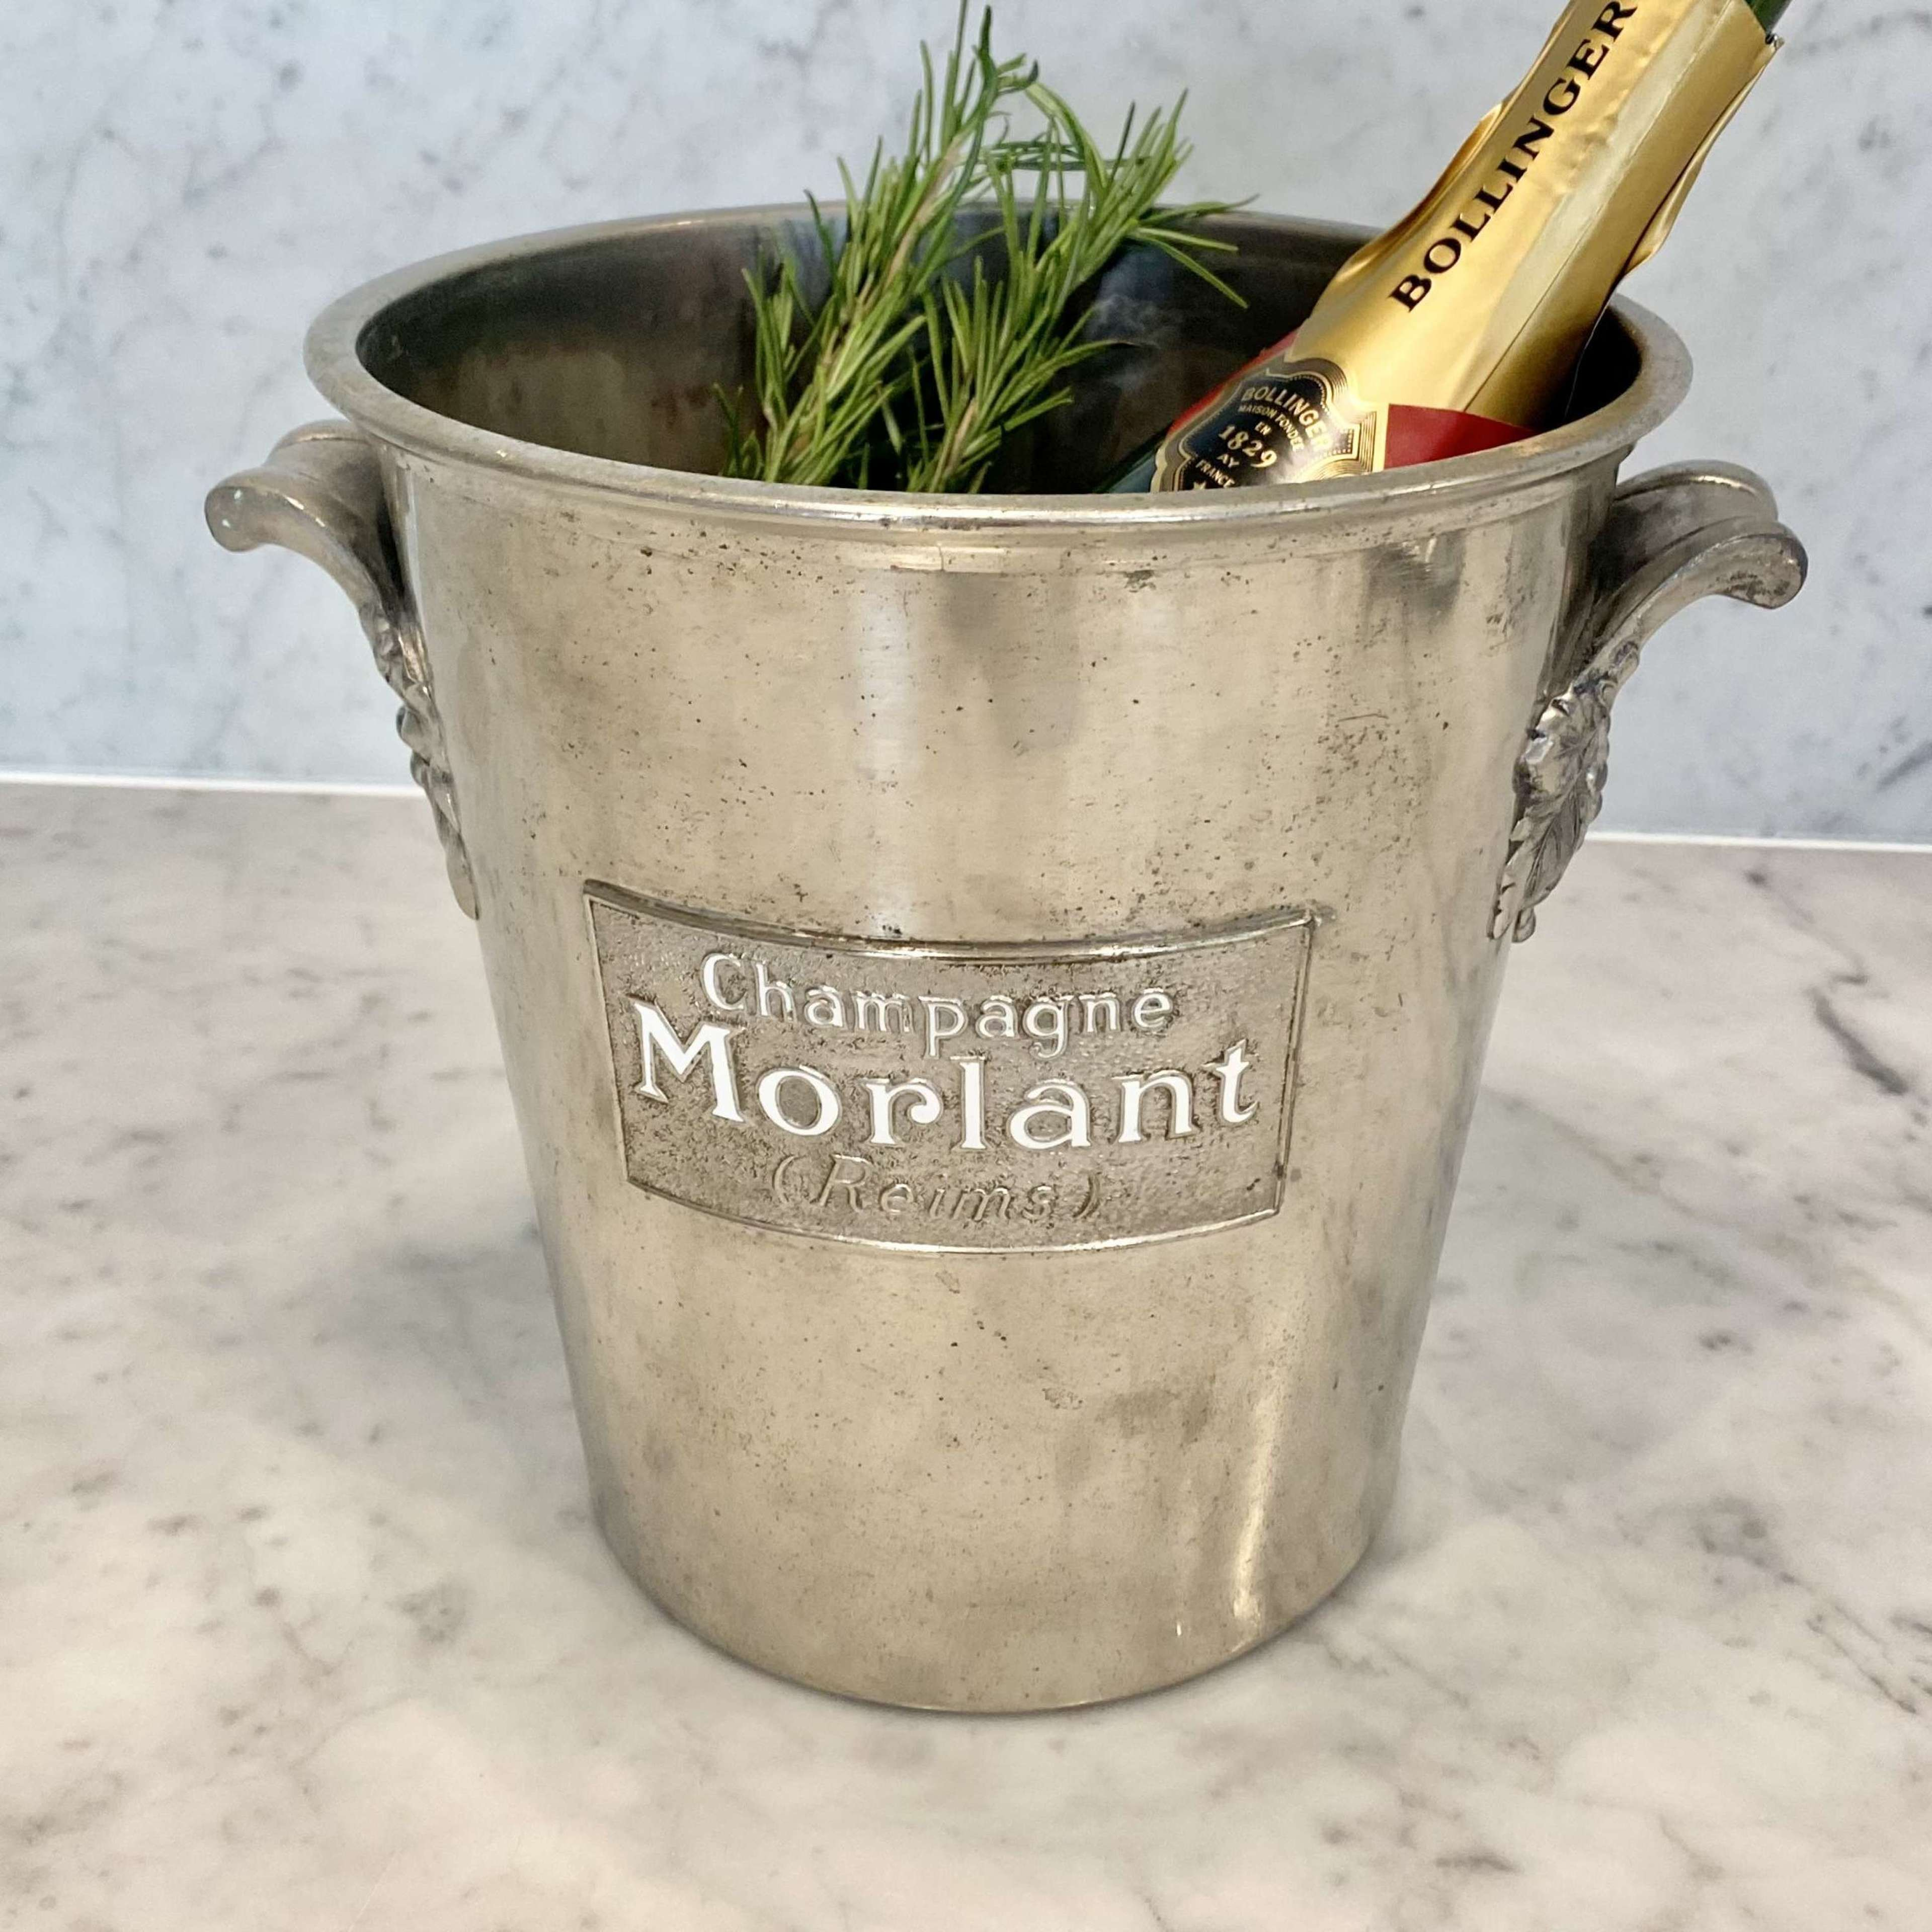 Champagne Morlant champagne wine cooler or ice bucket